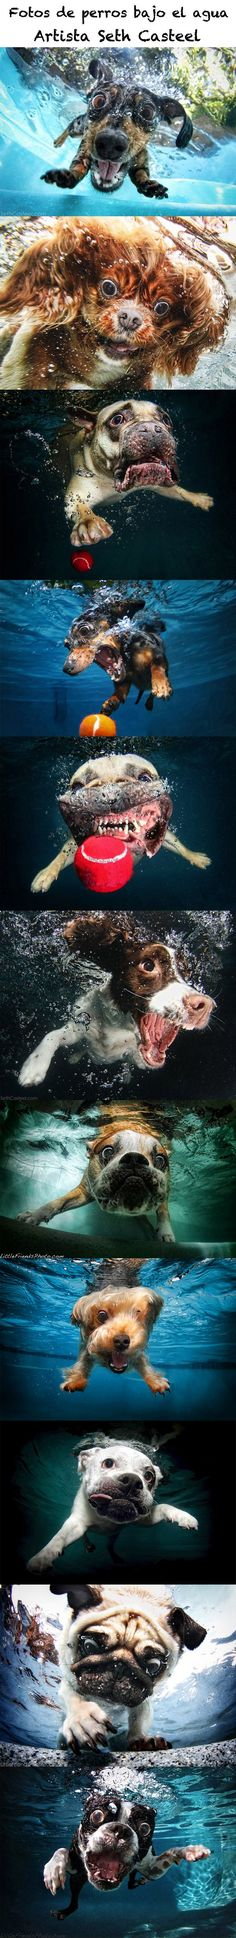 These pictures of dogs in water are amazing!